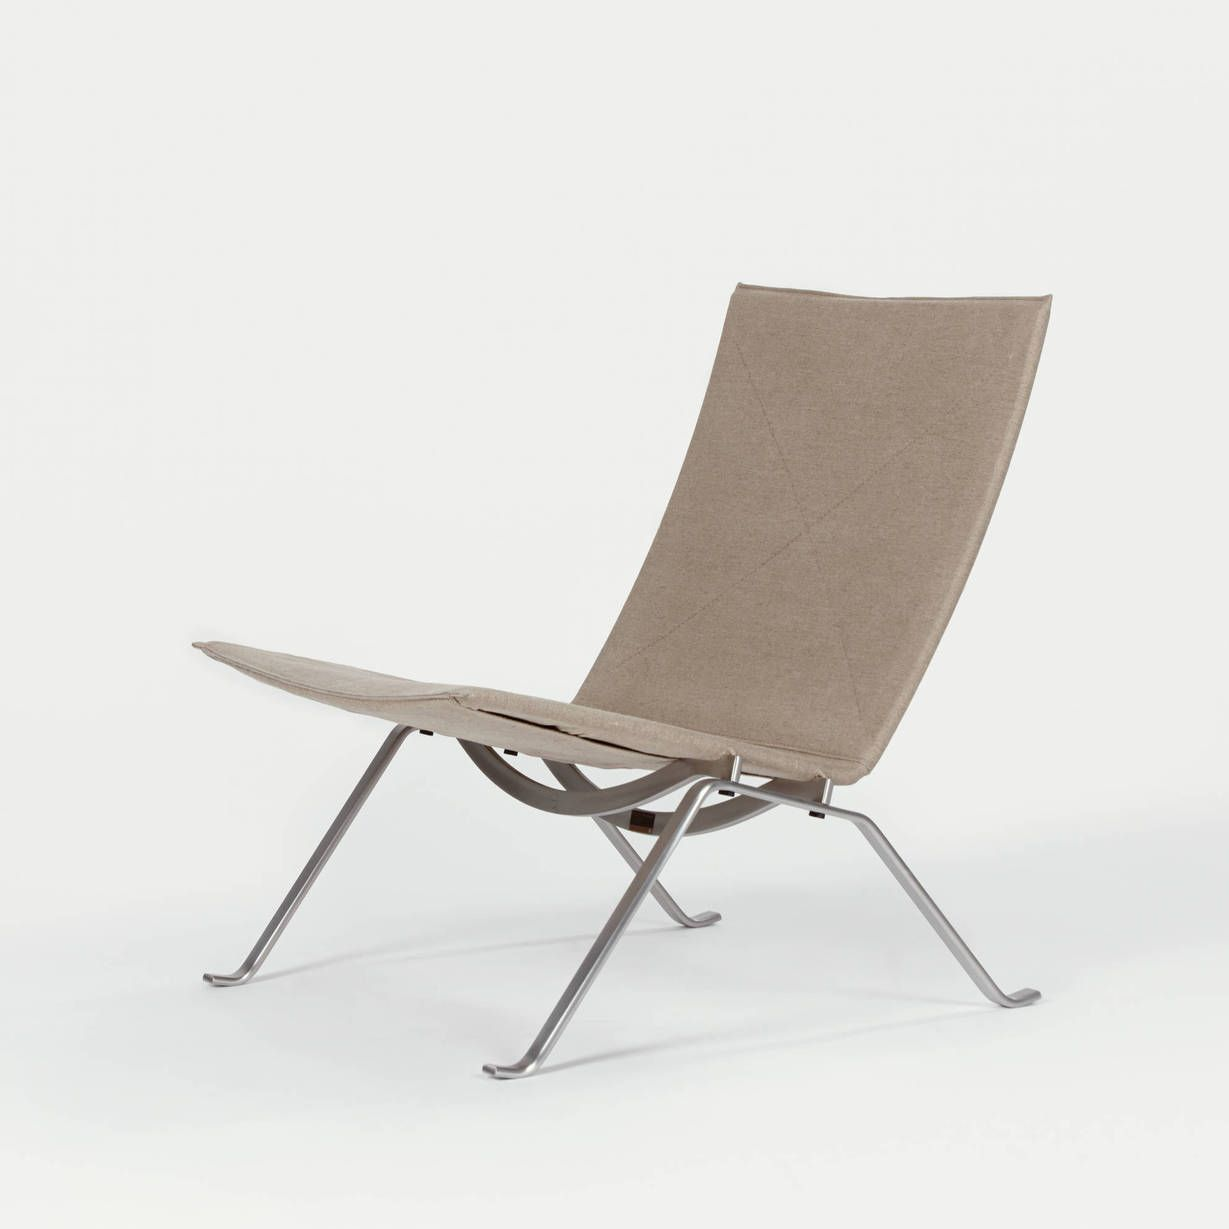 Pk22 Chair Pk22 Lounge Chair Natural Canvas White On White